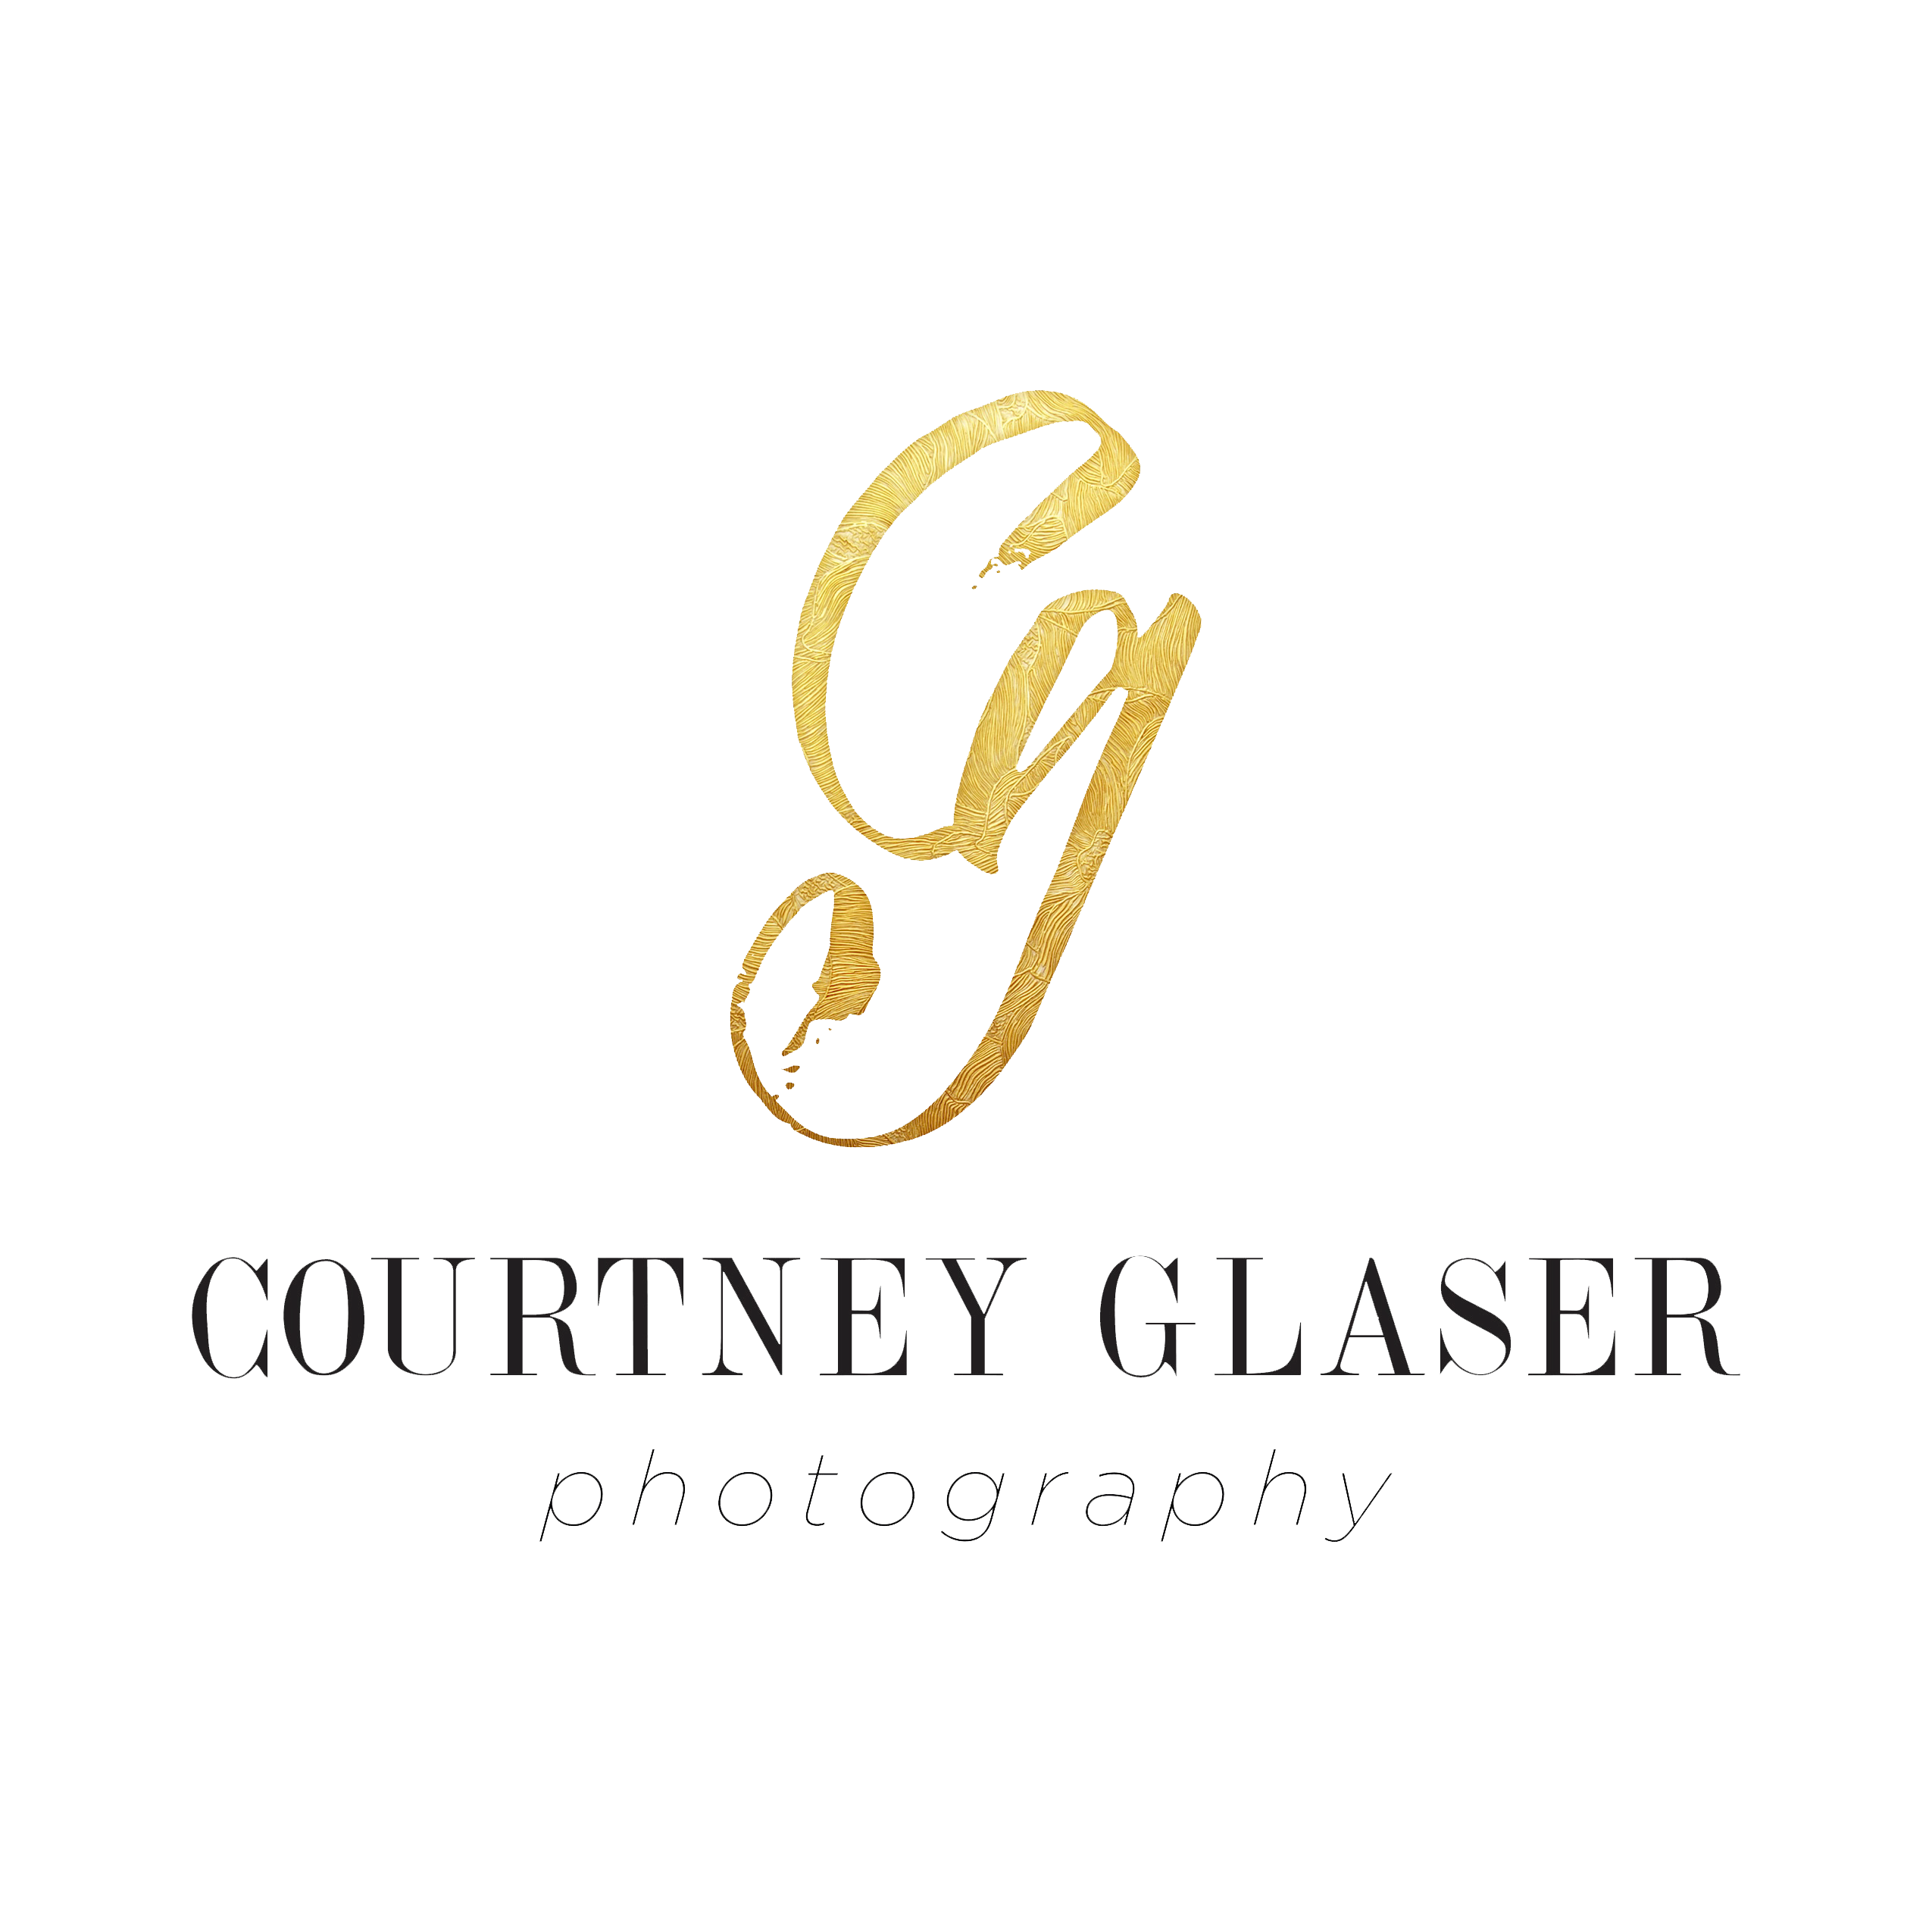 Courtney Glaser Photography